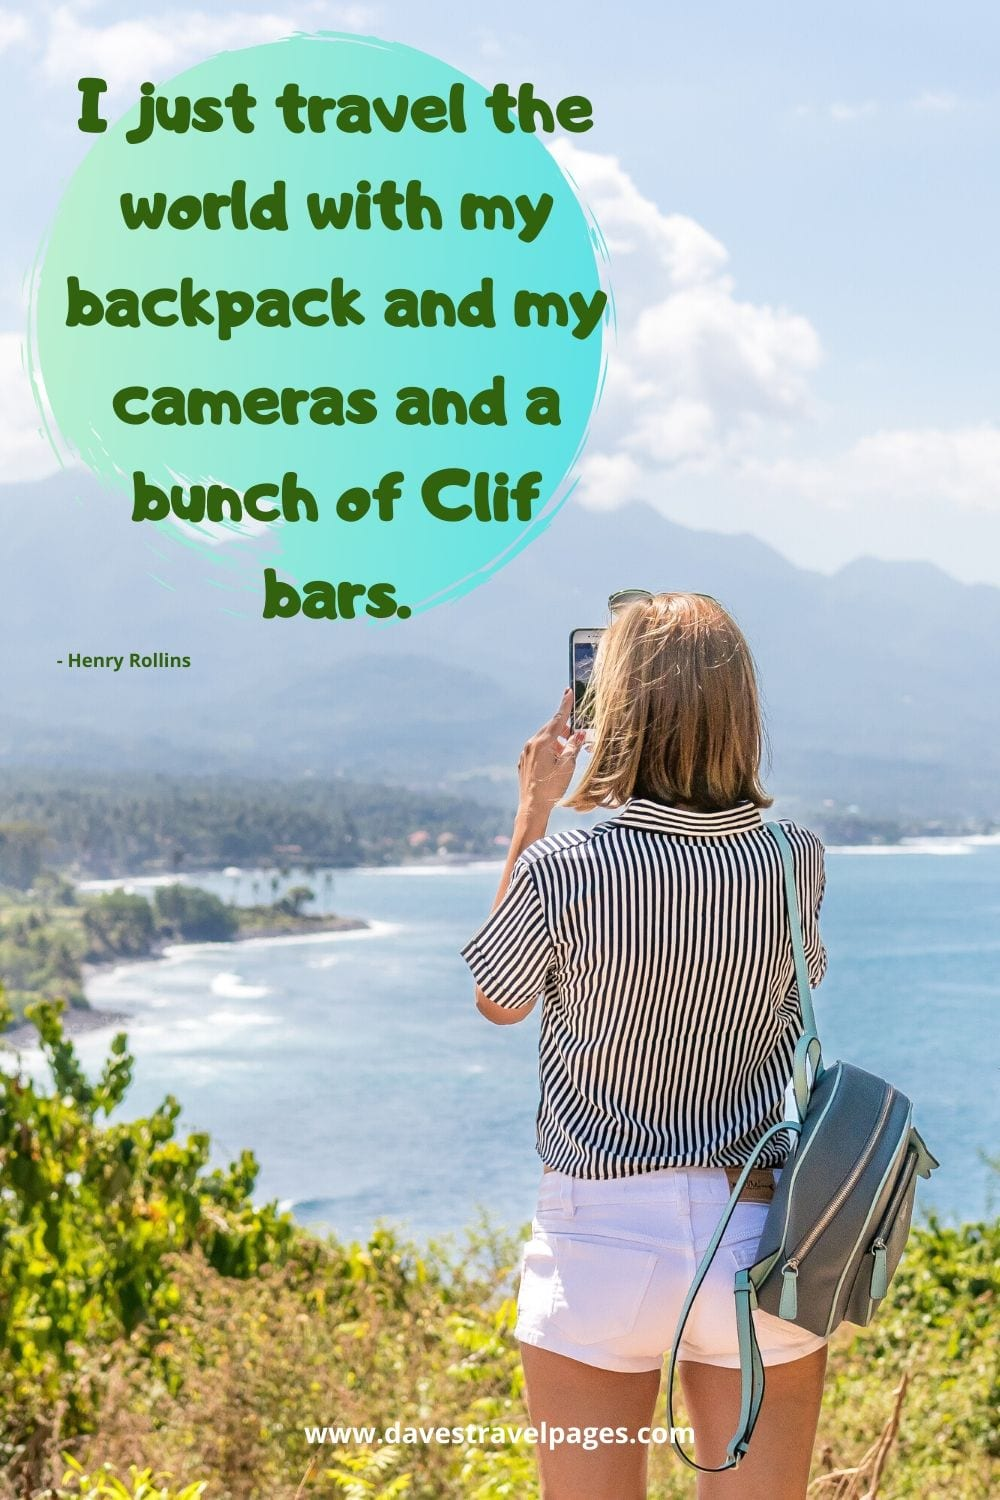 Famous travel the world quotes - I just travel the world with my backpack and my cameras and a bunch of Clif bars. Henry Rollins